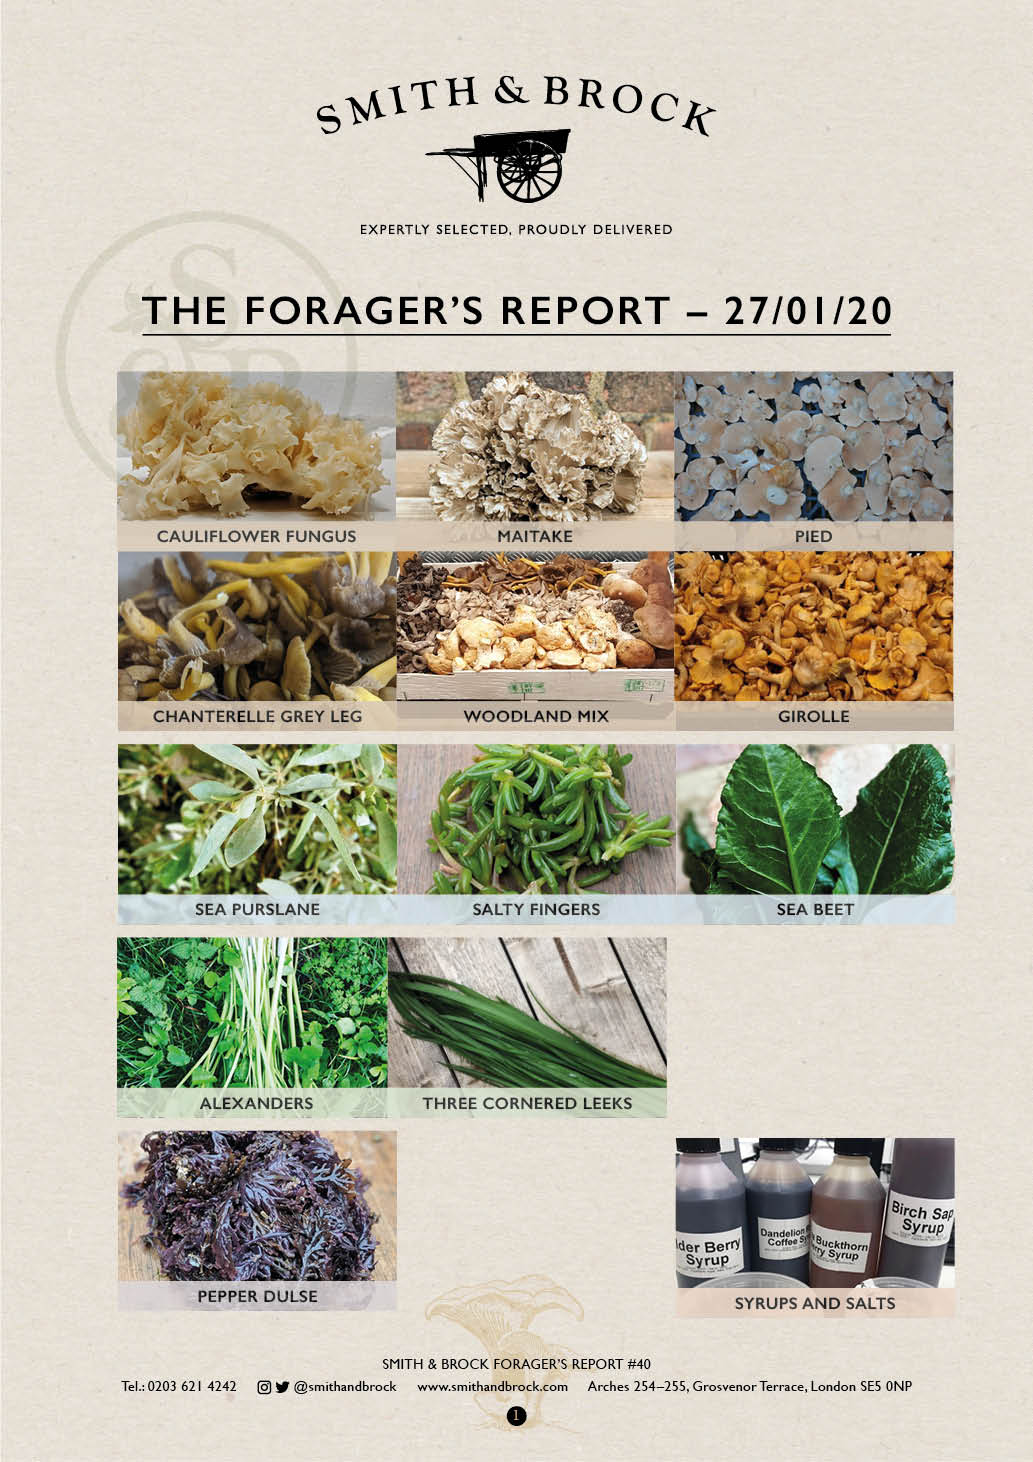 Smith&Brock Foraged Products Report 27 Jan 2020 40